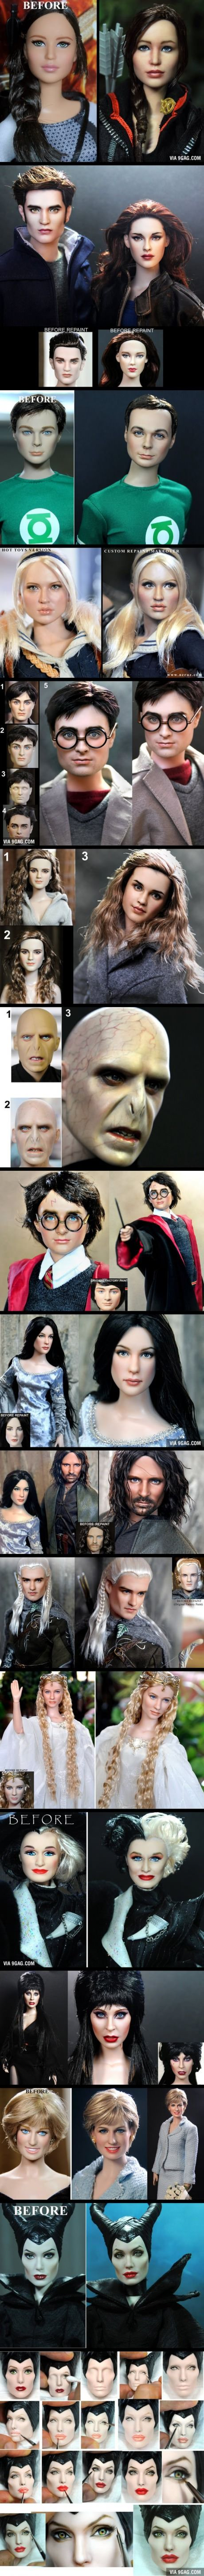 This Artist Takes Terrible Dolls and Turns Them Into Masterpieces